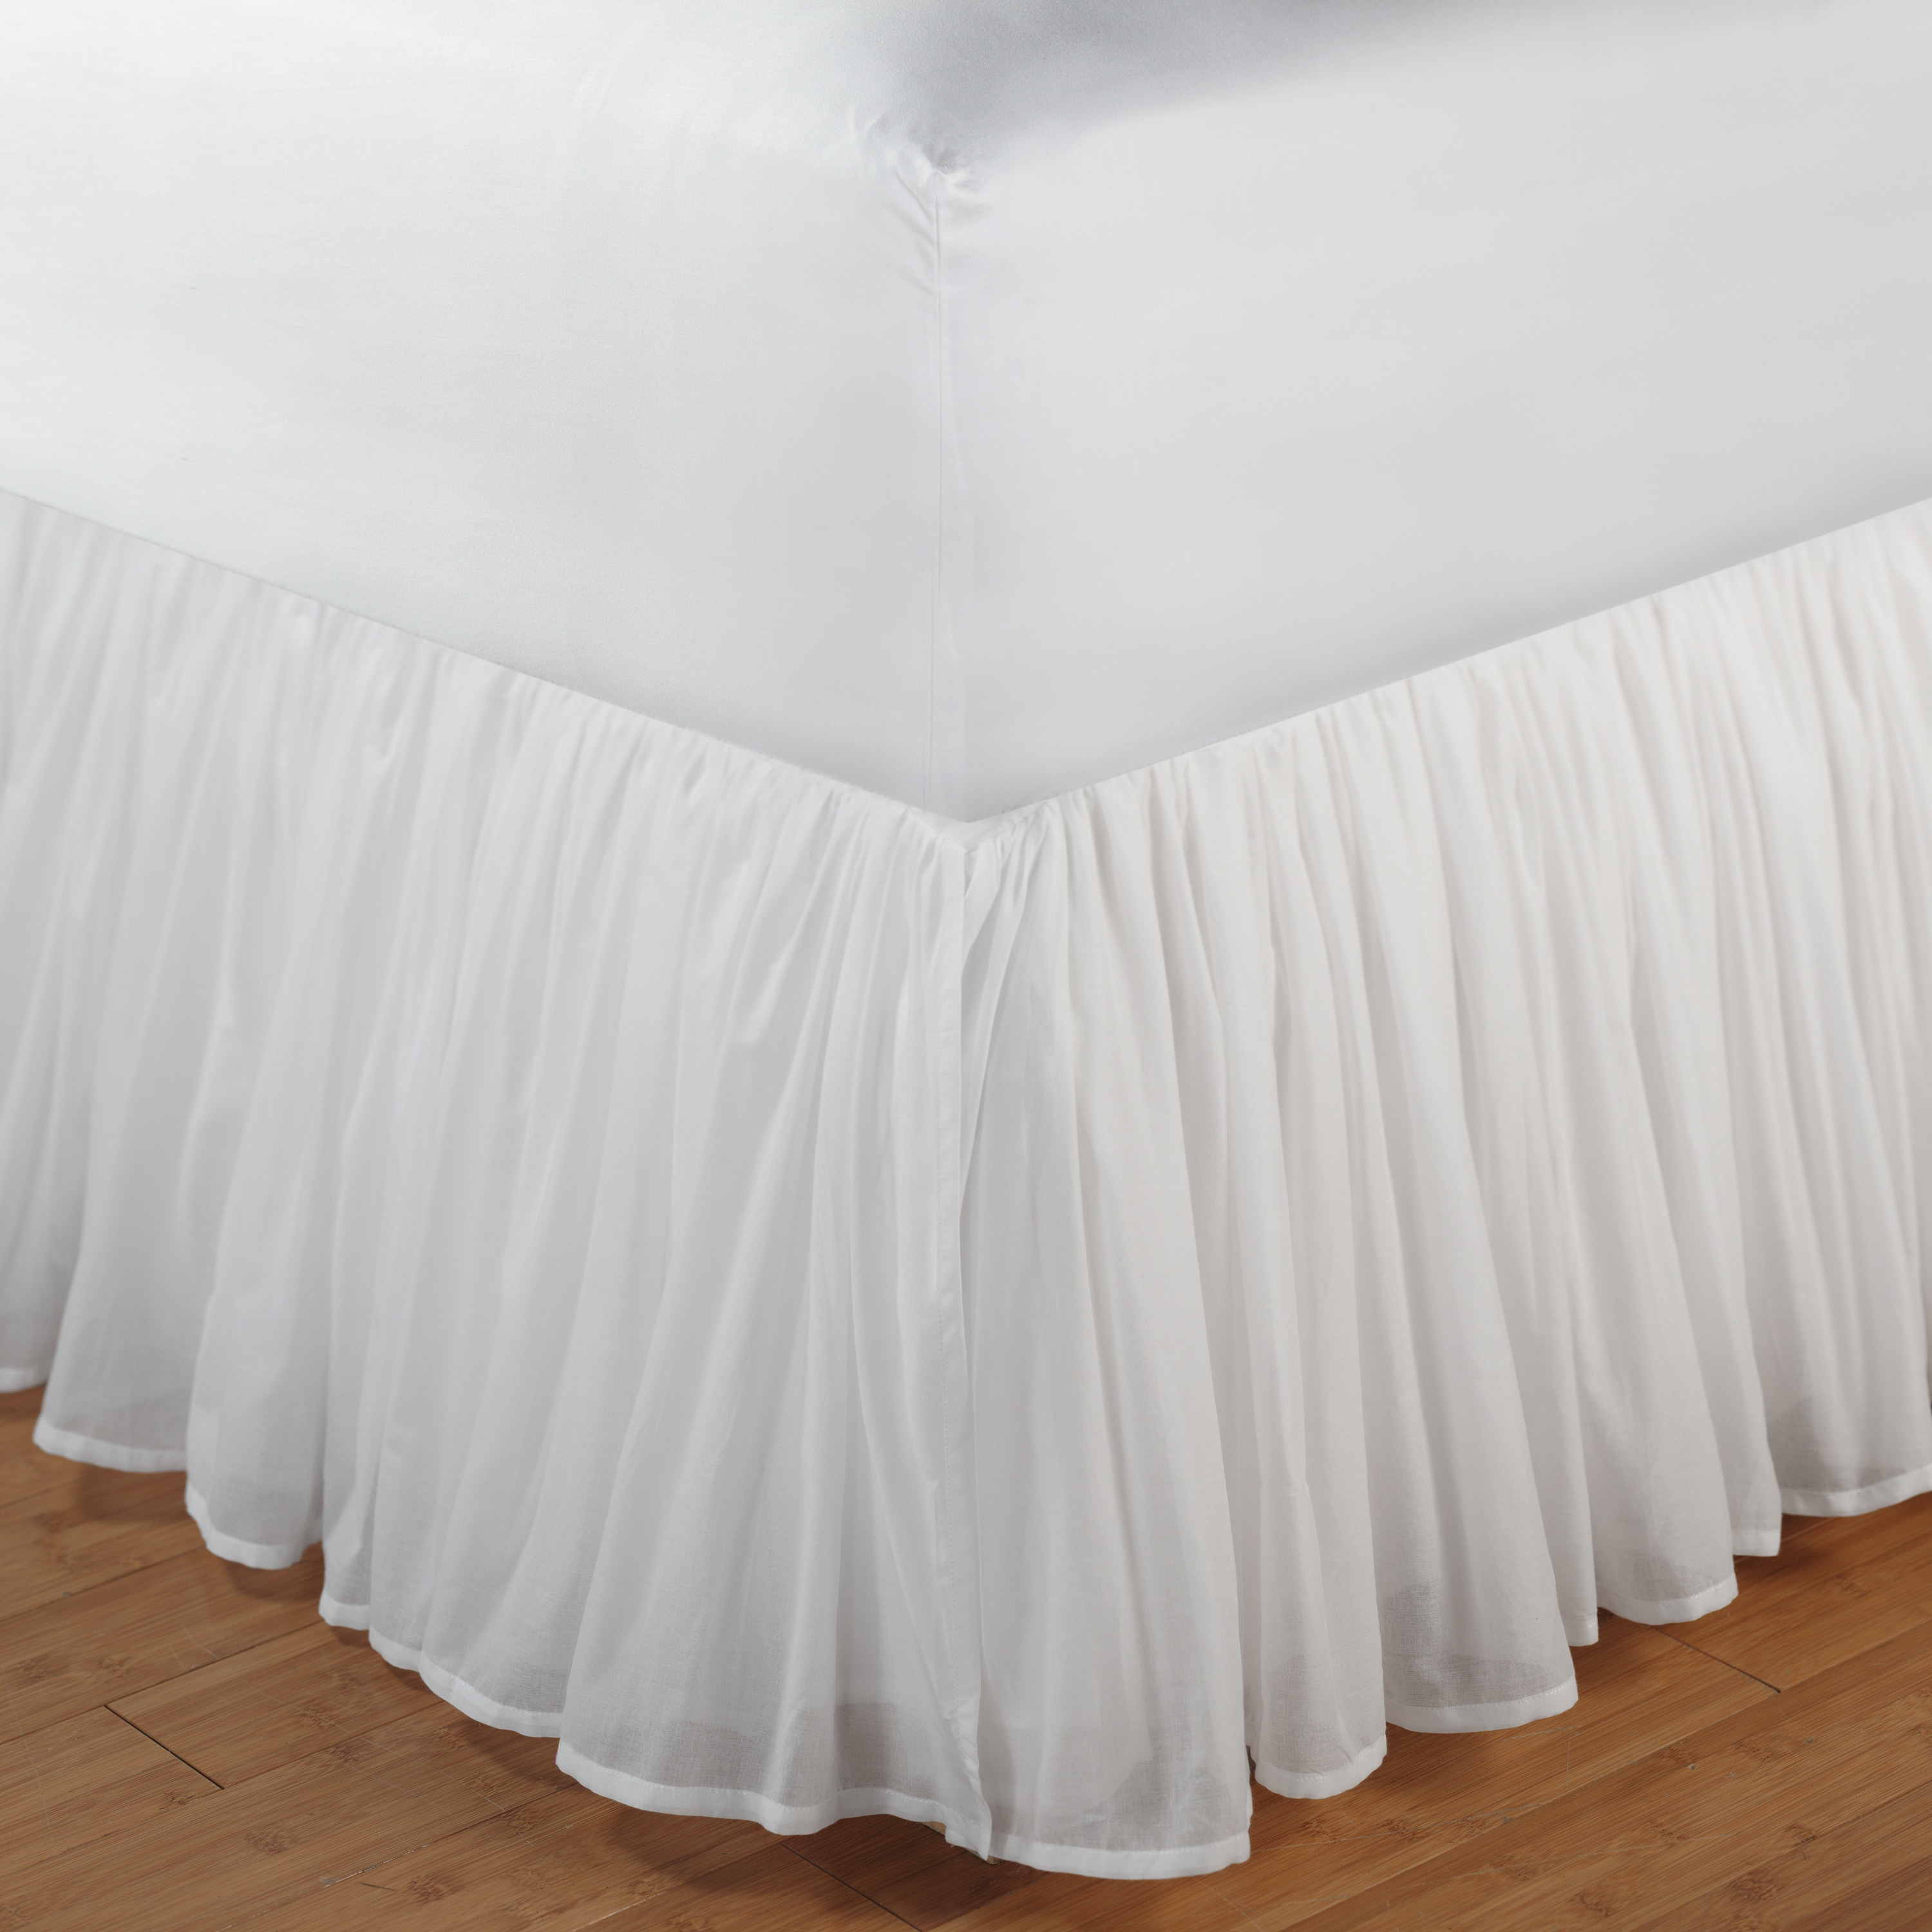 Bed Skirts Dust Ruffles Find Great Bedding Accessories Deals Ping At